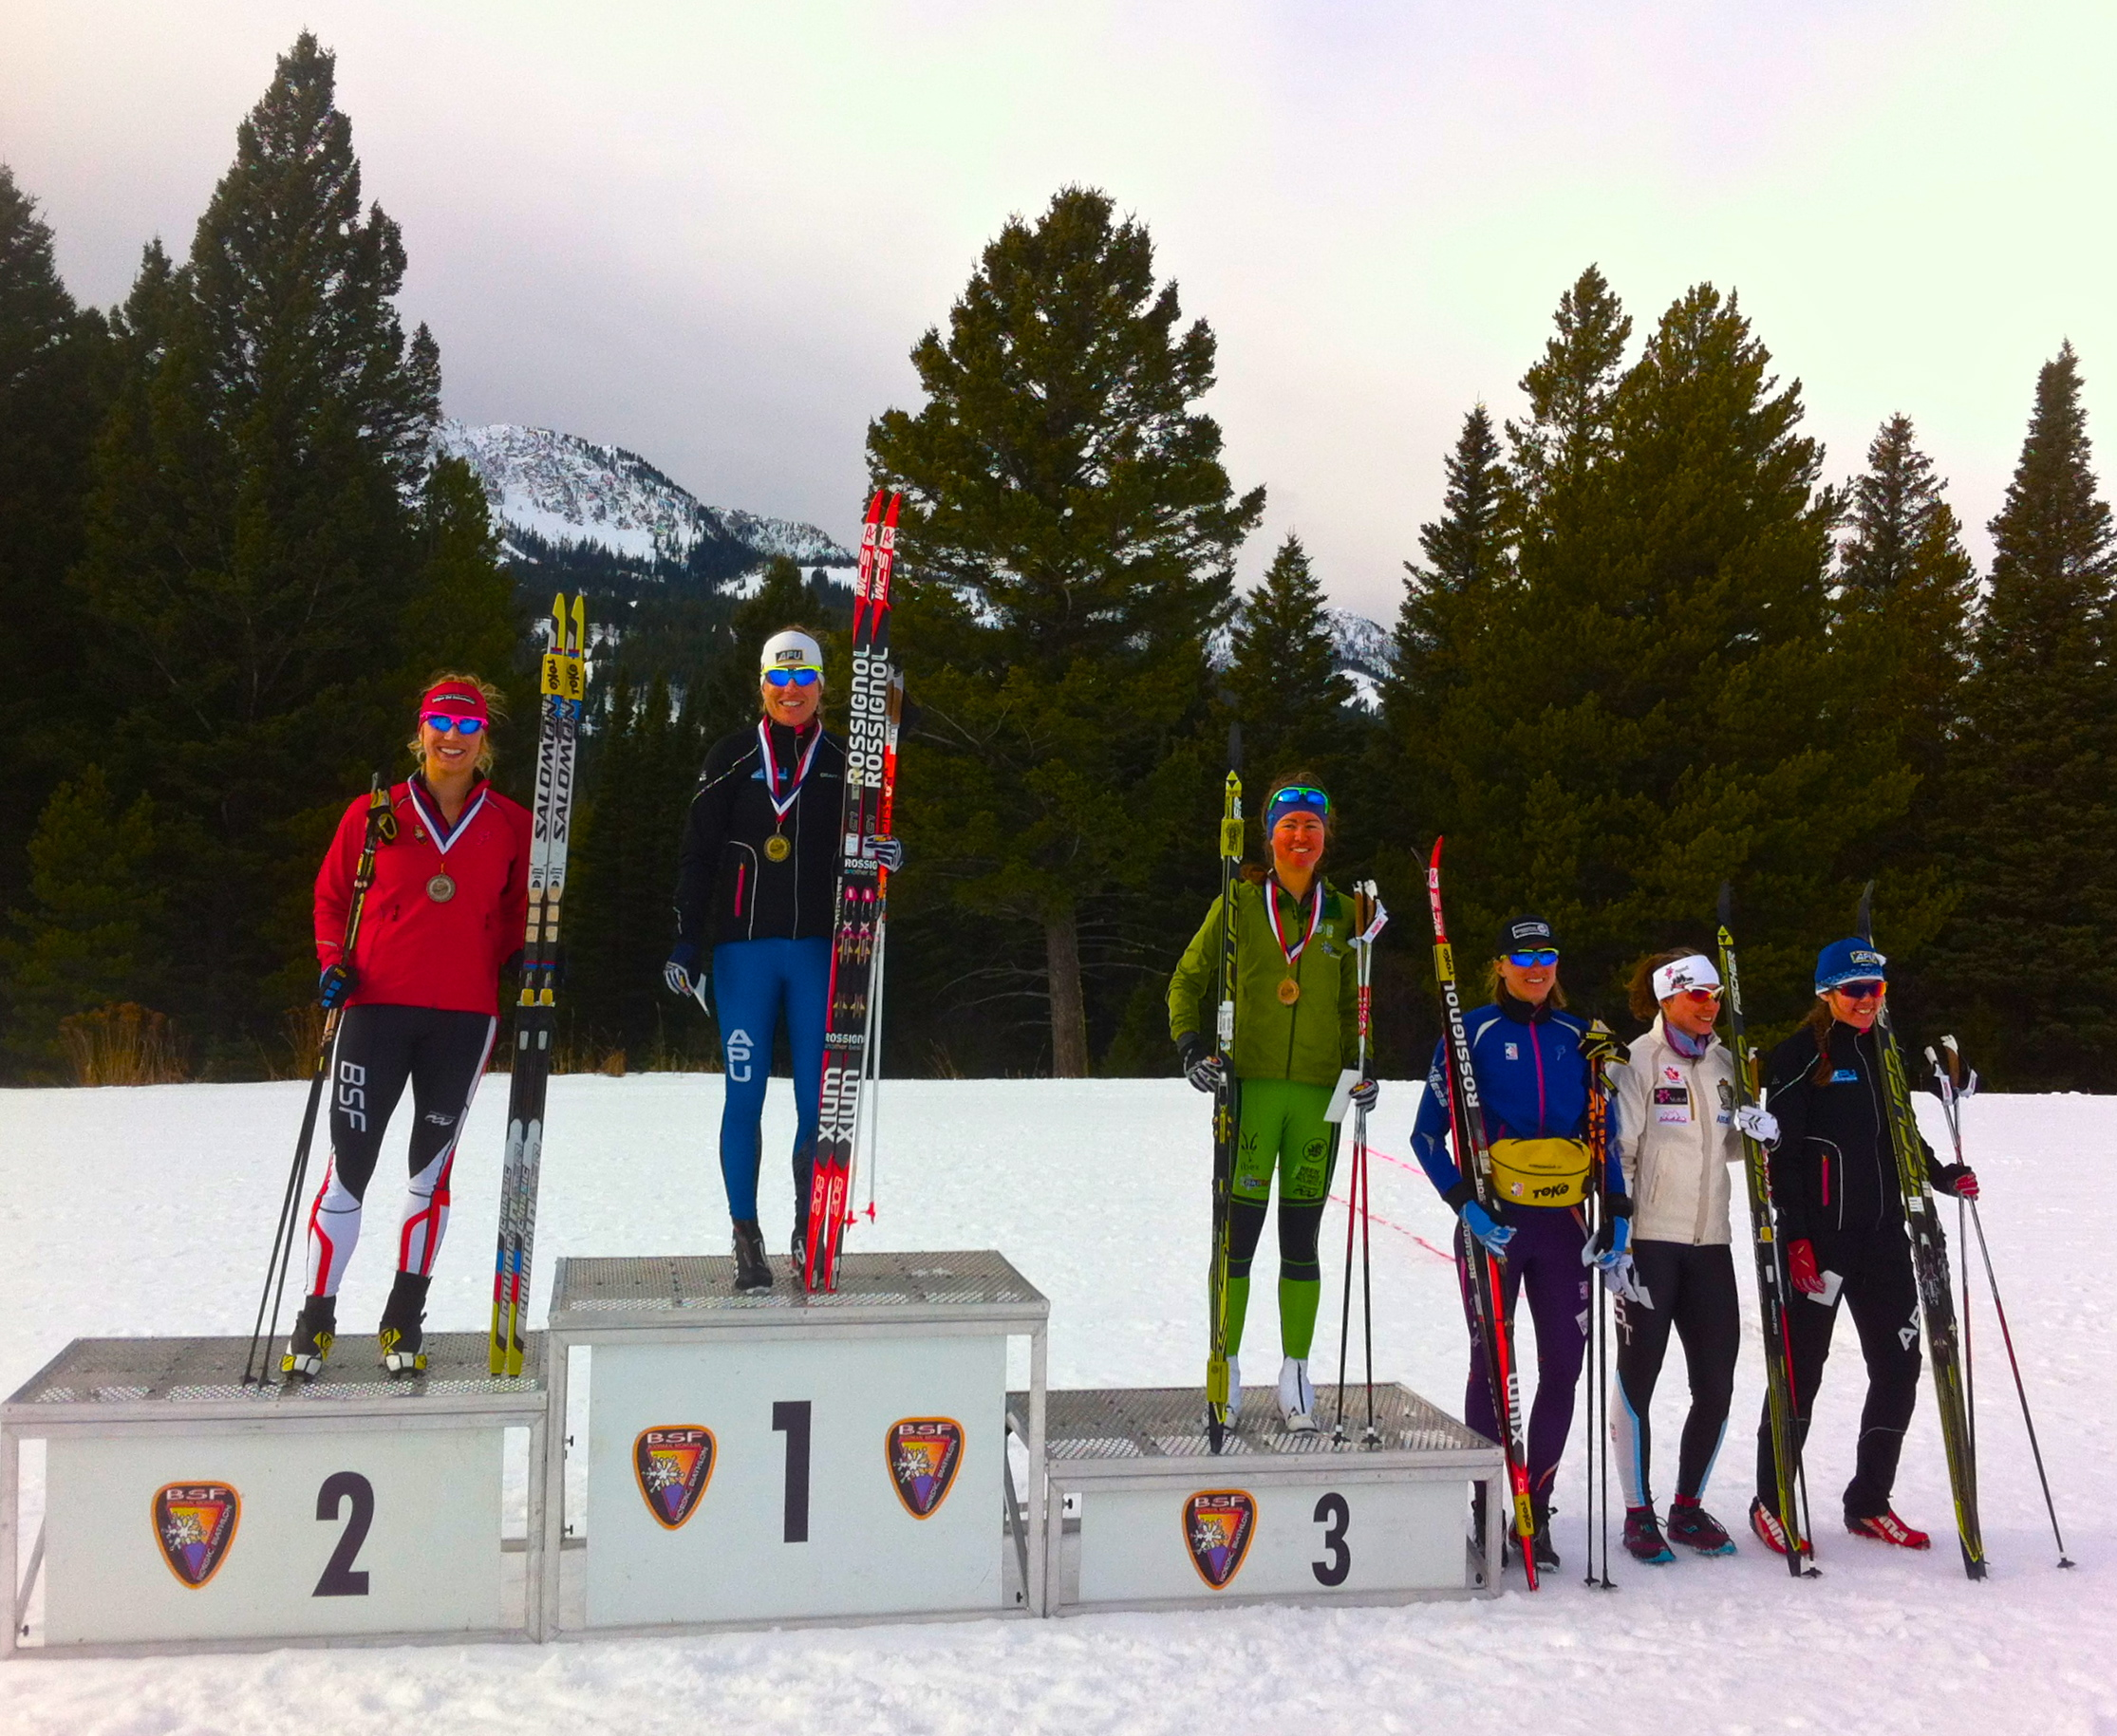 Rosie on the podium once again!!!